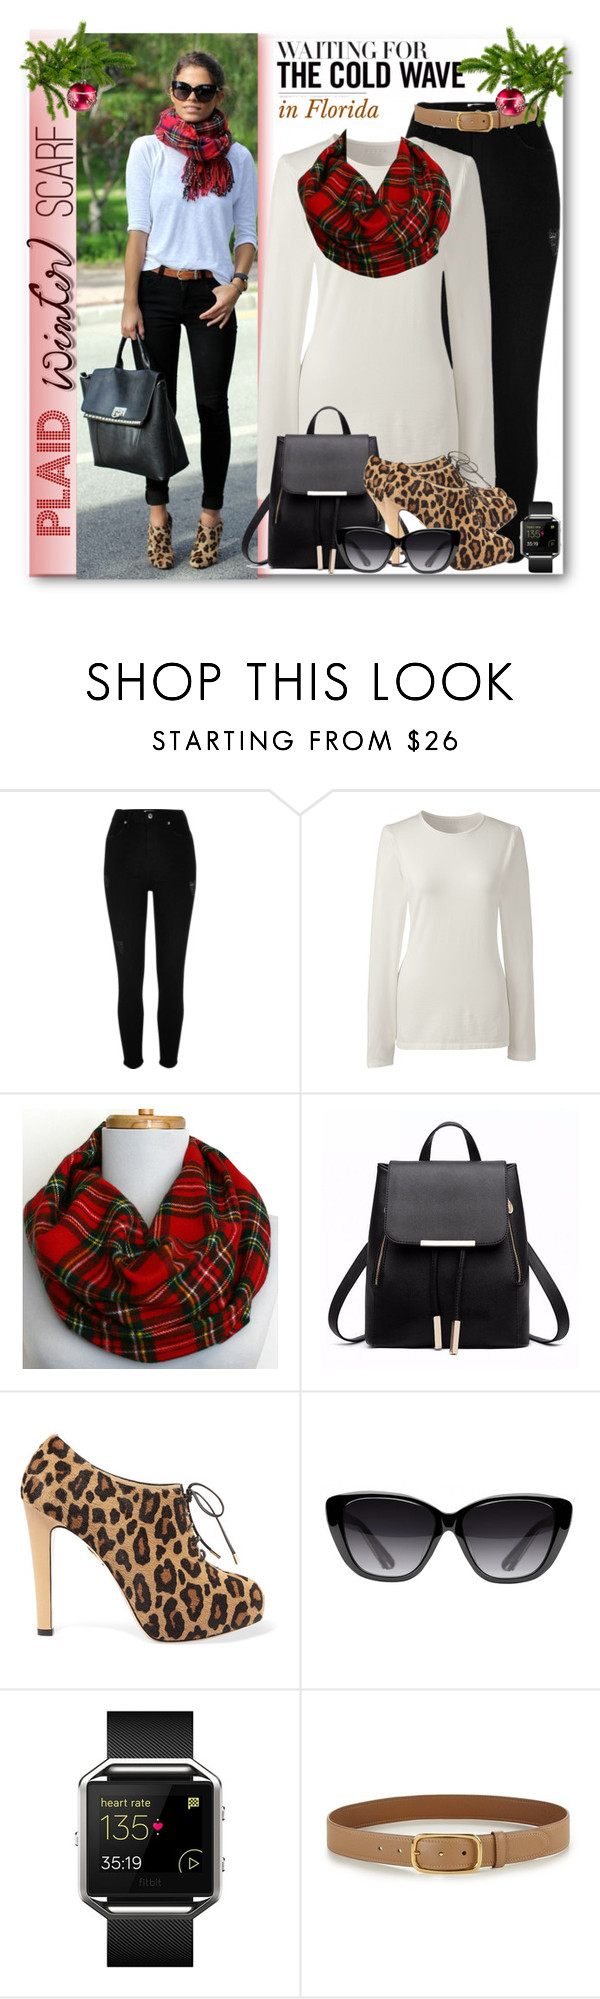 """Plaid Winter Scarf, waiting on the cold wave in FL!!"" by fashionlibra84 ❤ liked on Polyvore featuring River Island, Lands' End, Charlotte Olympia, Elizabeth and James, Fitbit and Prada"